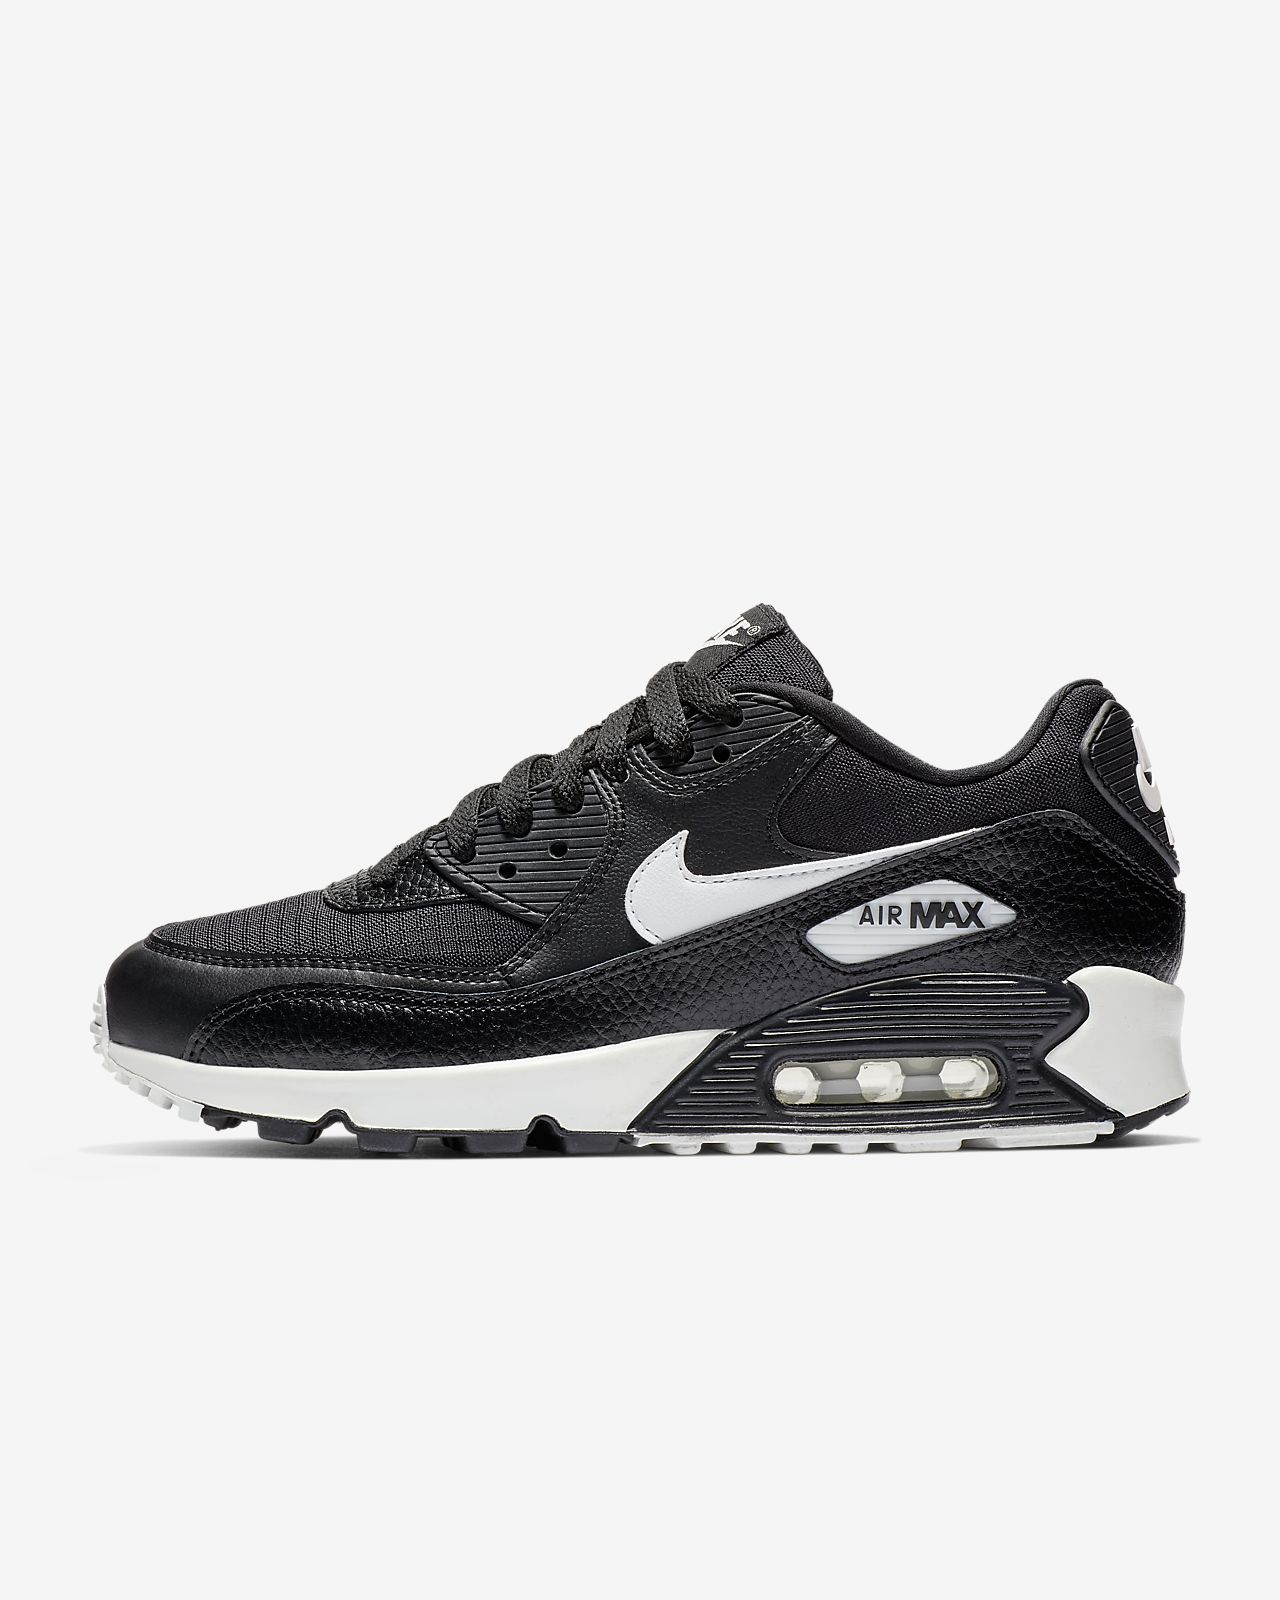 check out bb0a3 4ae94 Nike Air Max 90 Women s Shoe. Nike.com AU